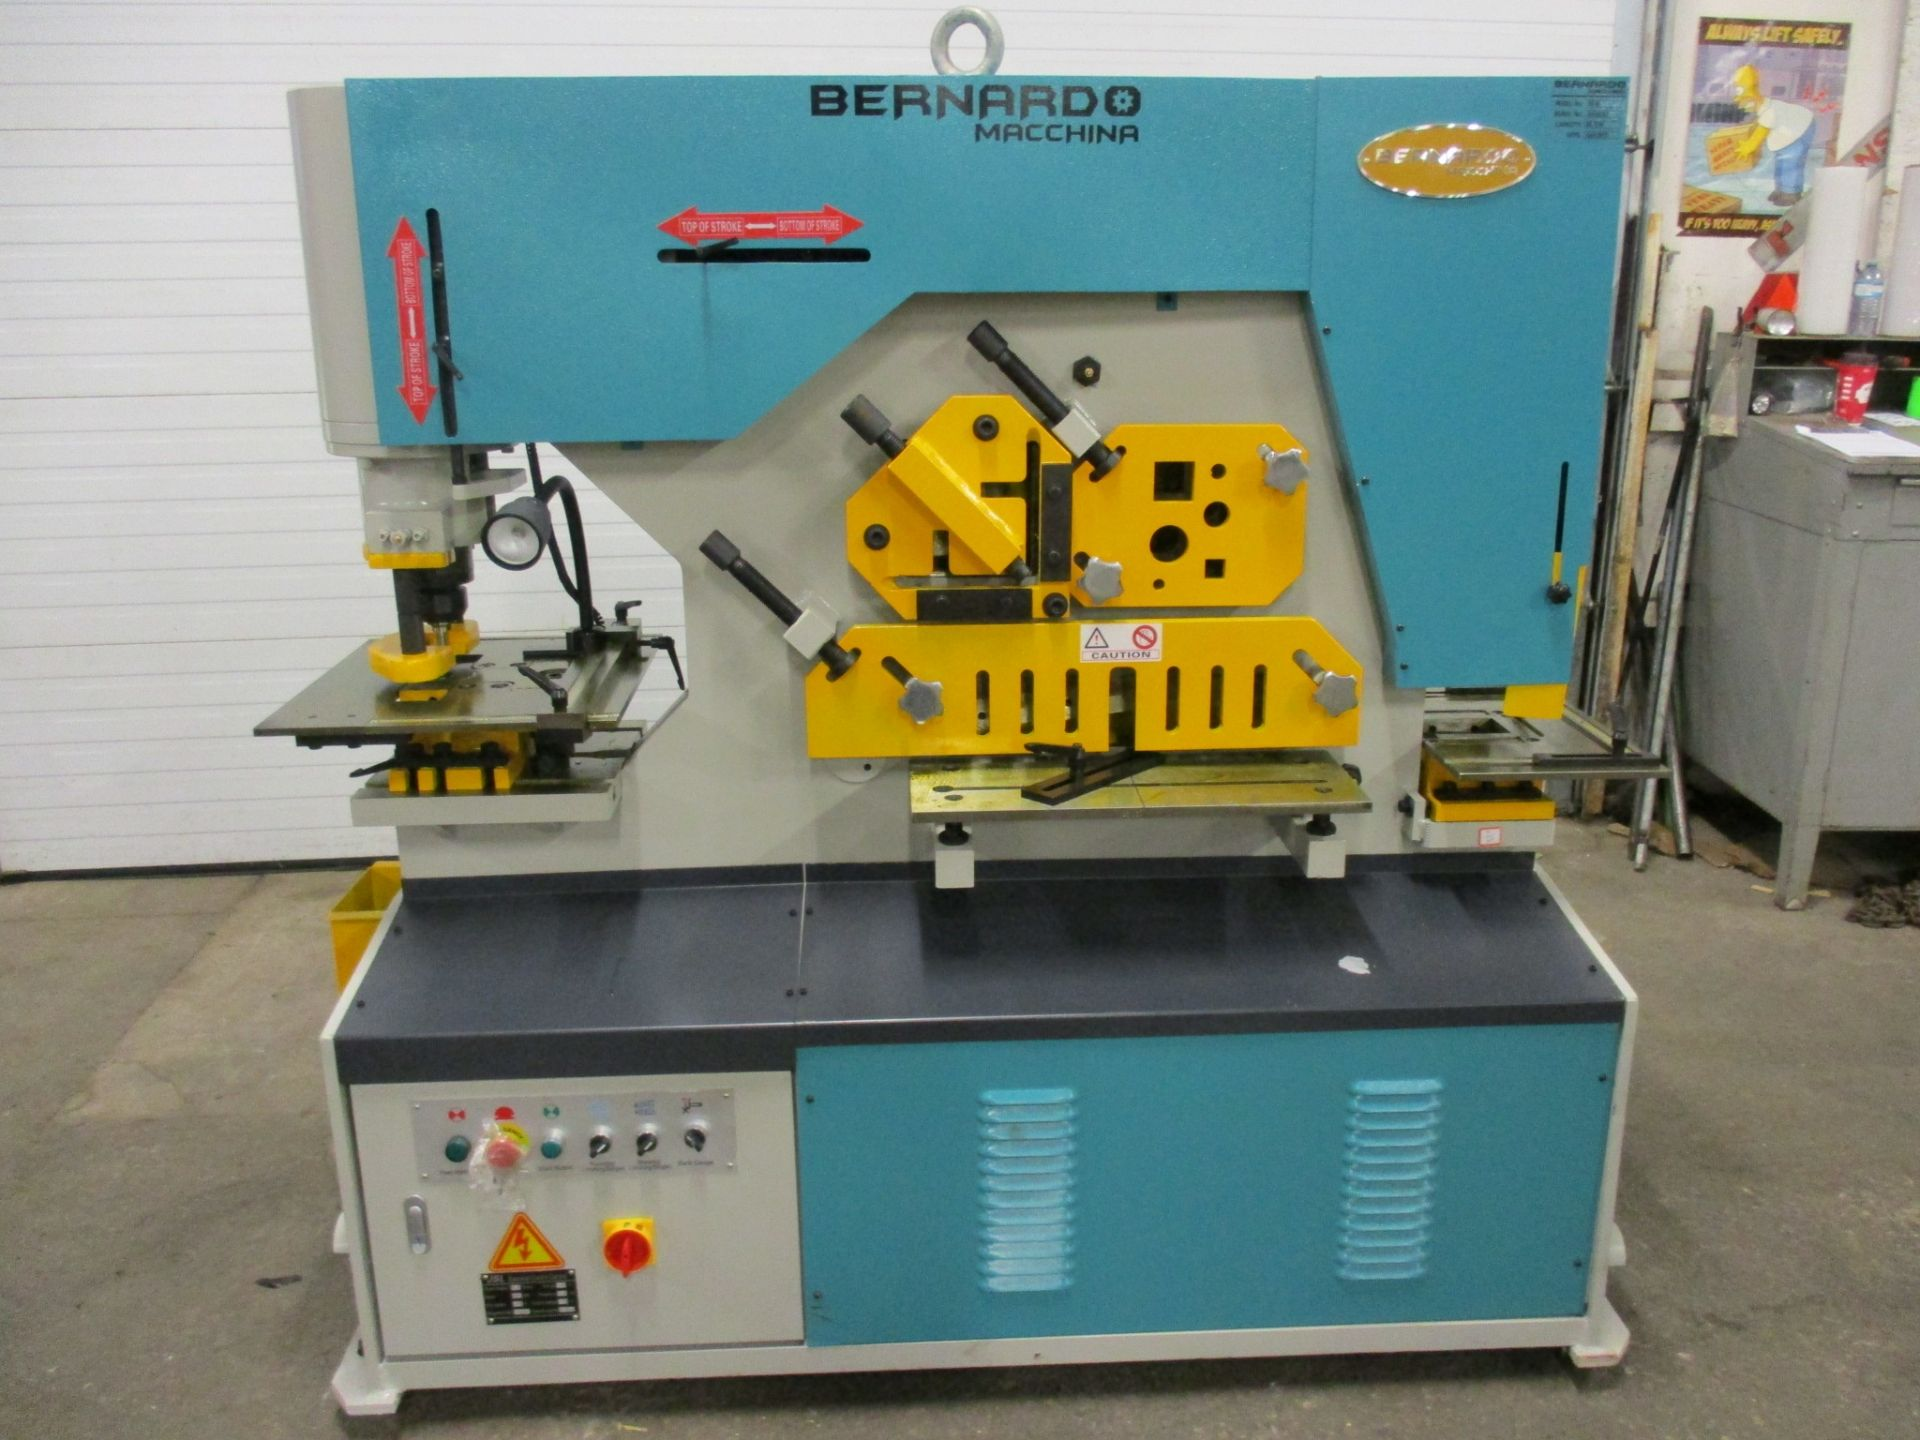 Bernardo Macchina 95 Ton Capacity Hydraulic Ironworker - complete with dies and punches - Dual